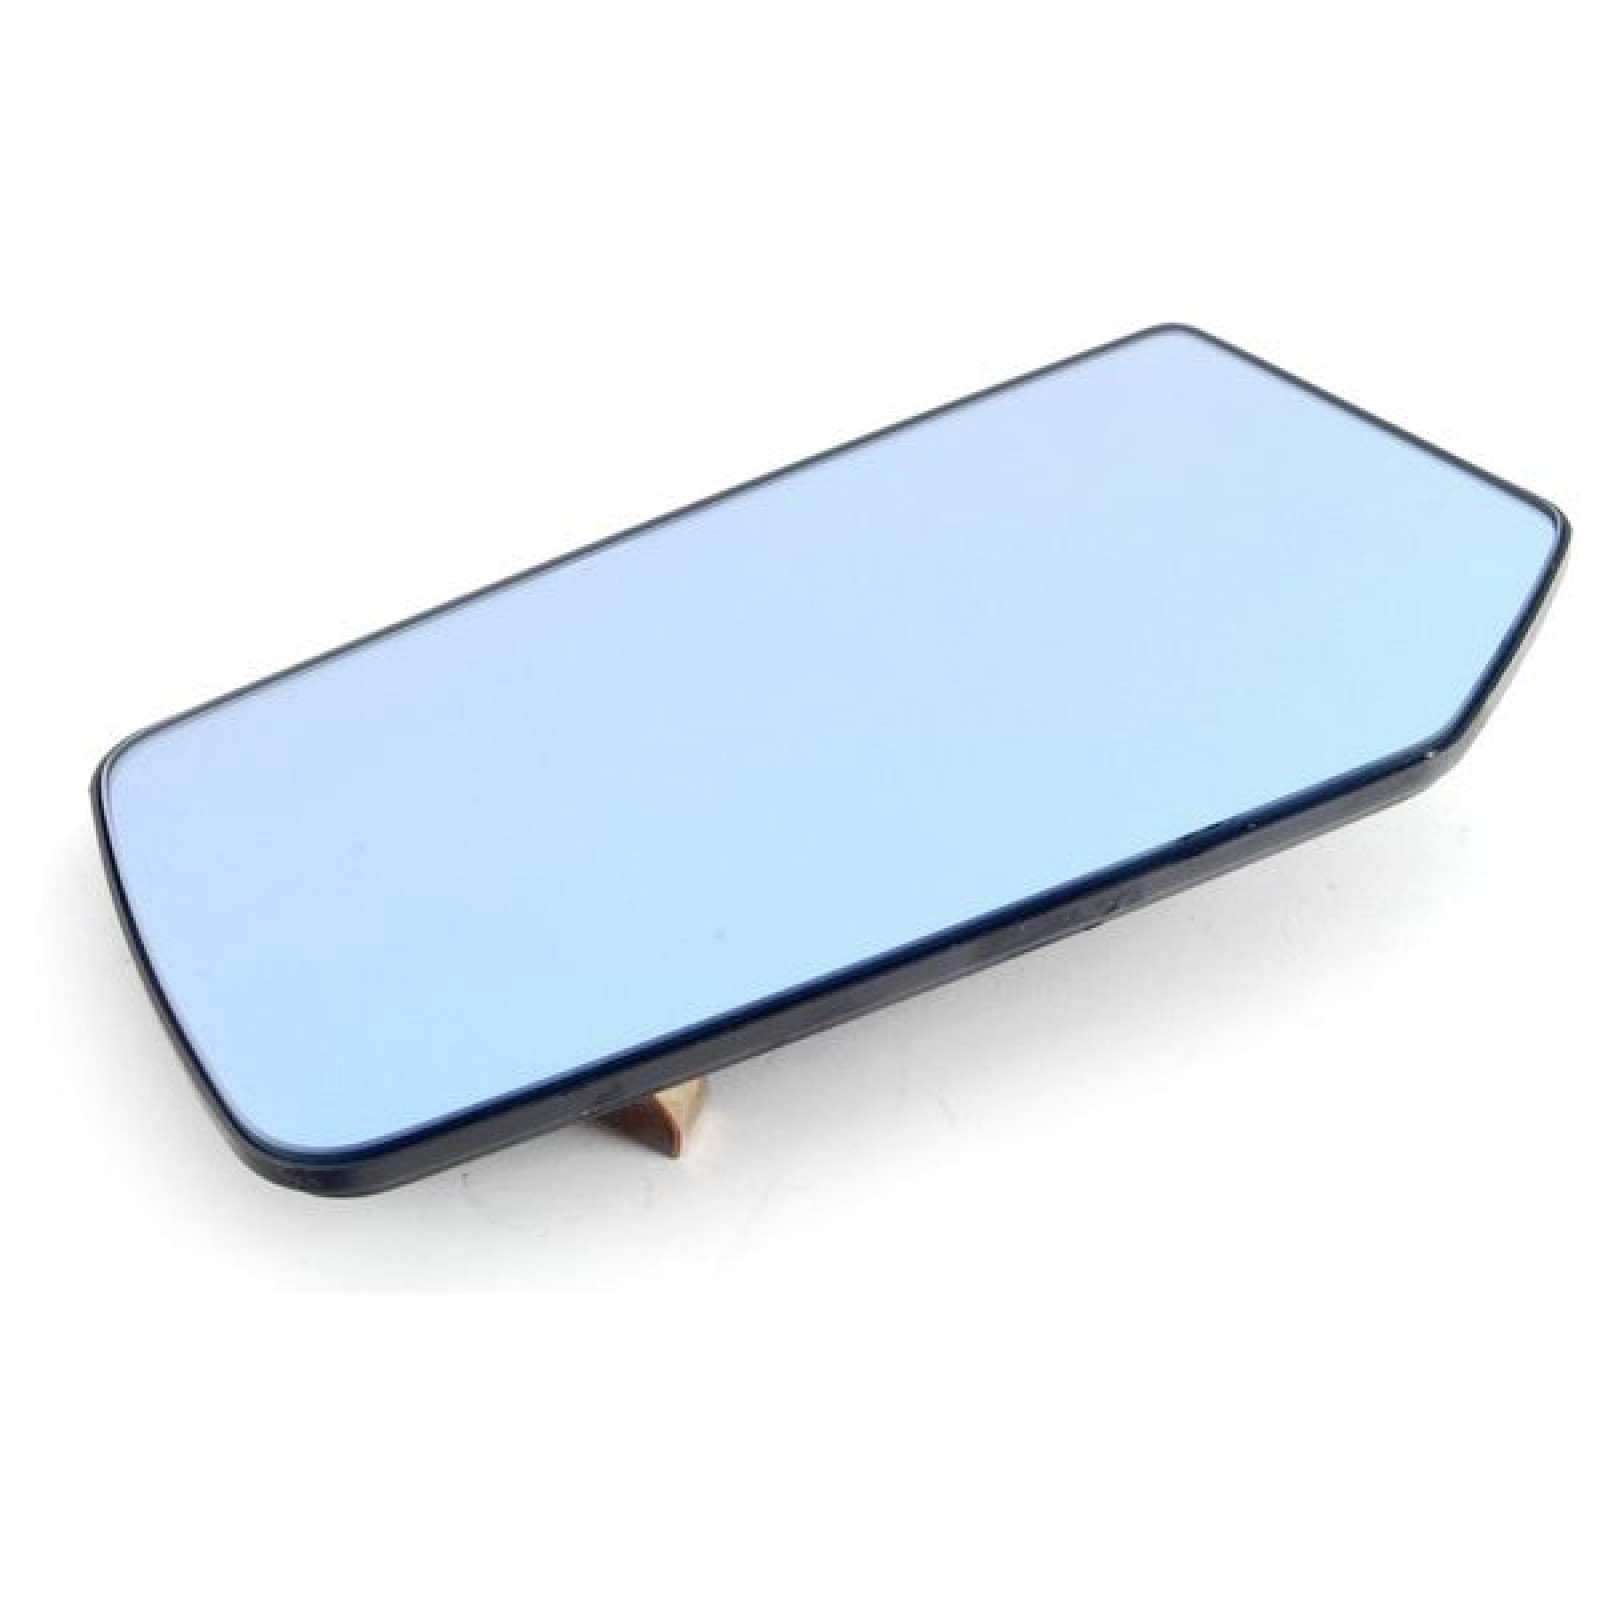 Mercedes benz rhd 1968 89 right side mirror glass for Mercedes benz glass replacement